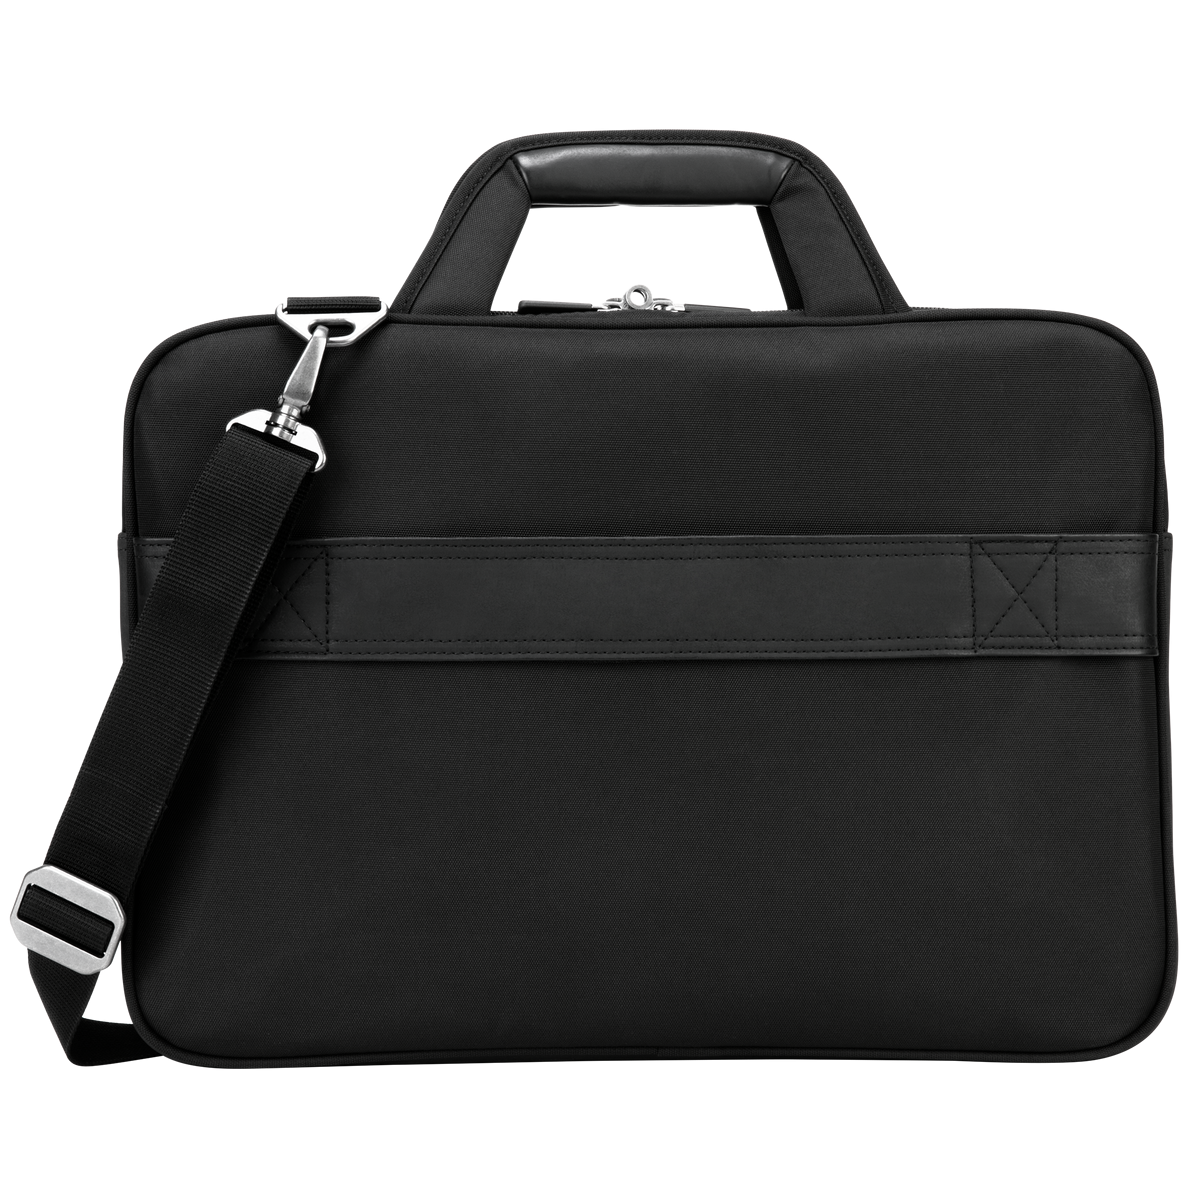 Briefcase clipart laptop bag. Mobile vip checkpoint friendly